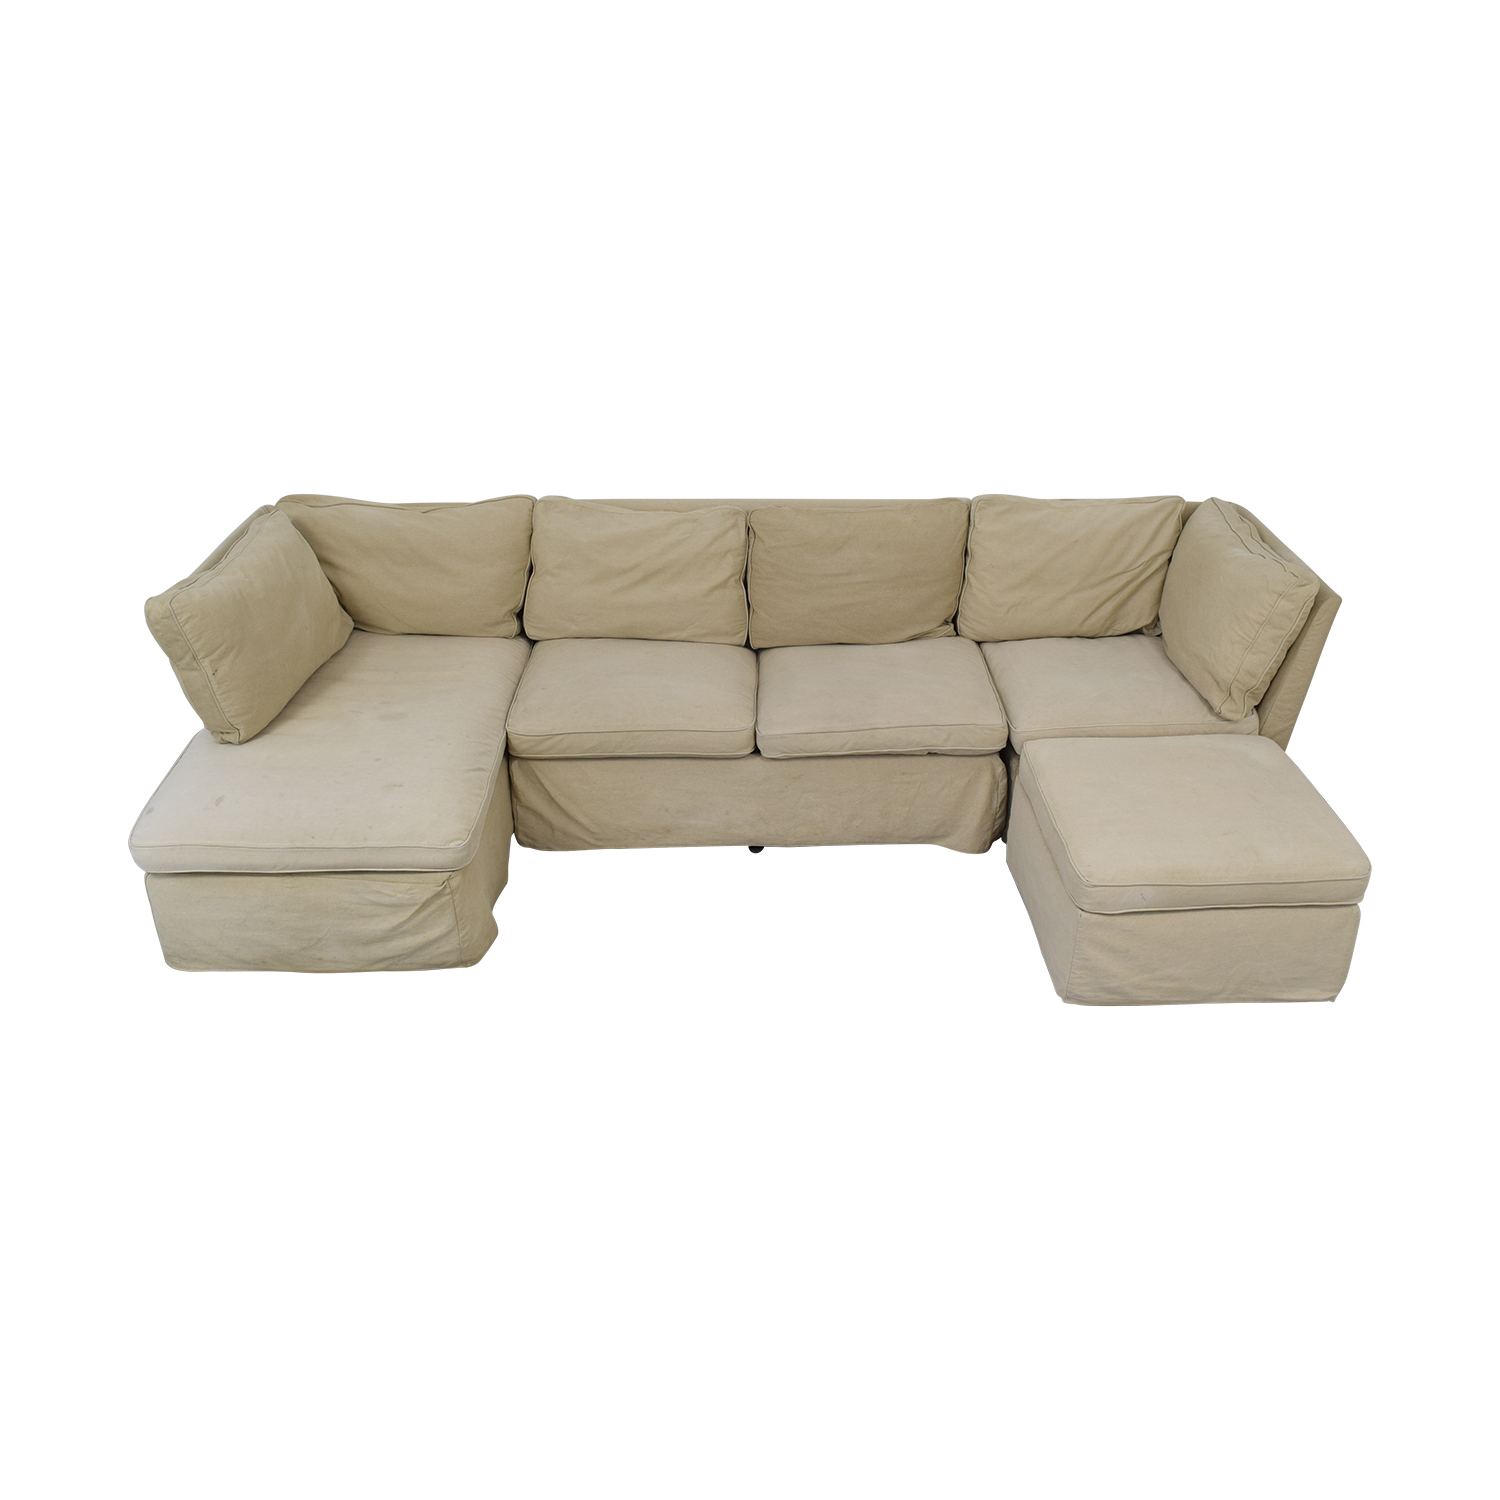 ABC Carpet & Home Sectional with Ottoman / Sofas